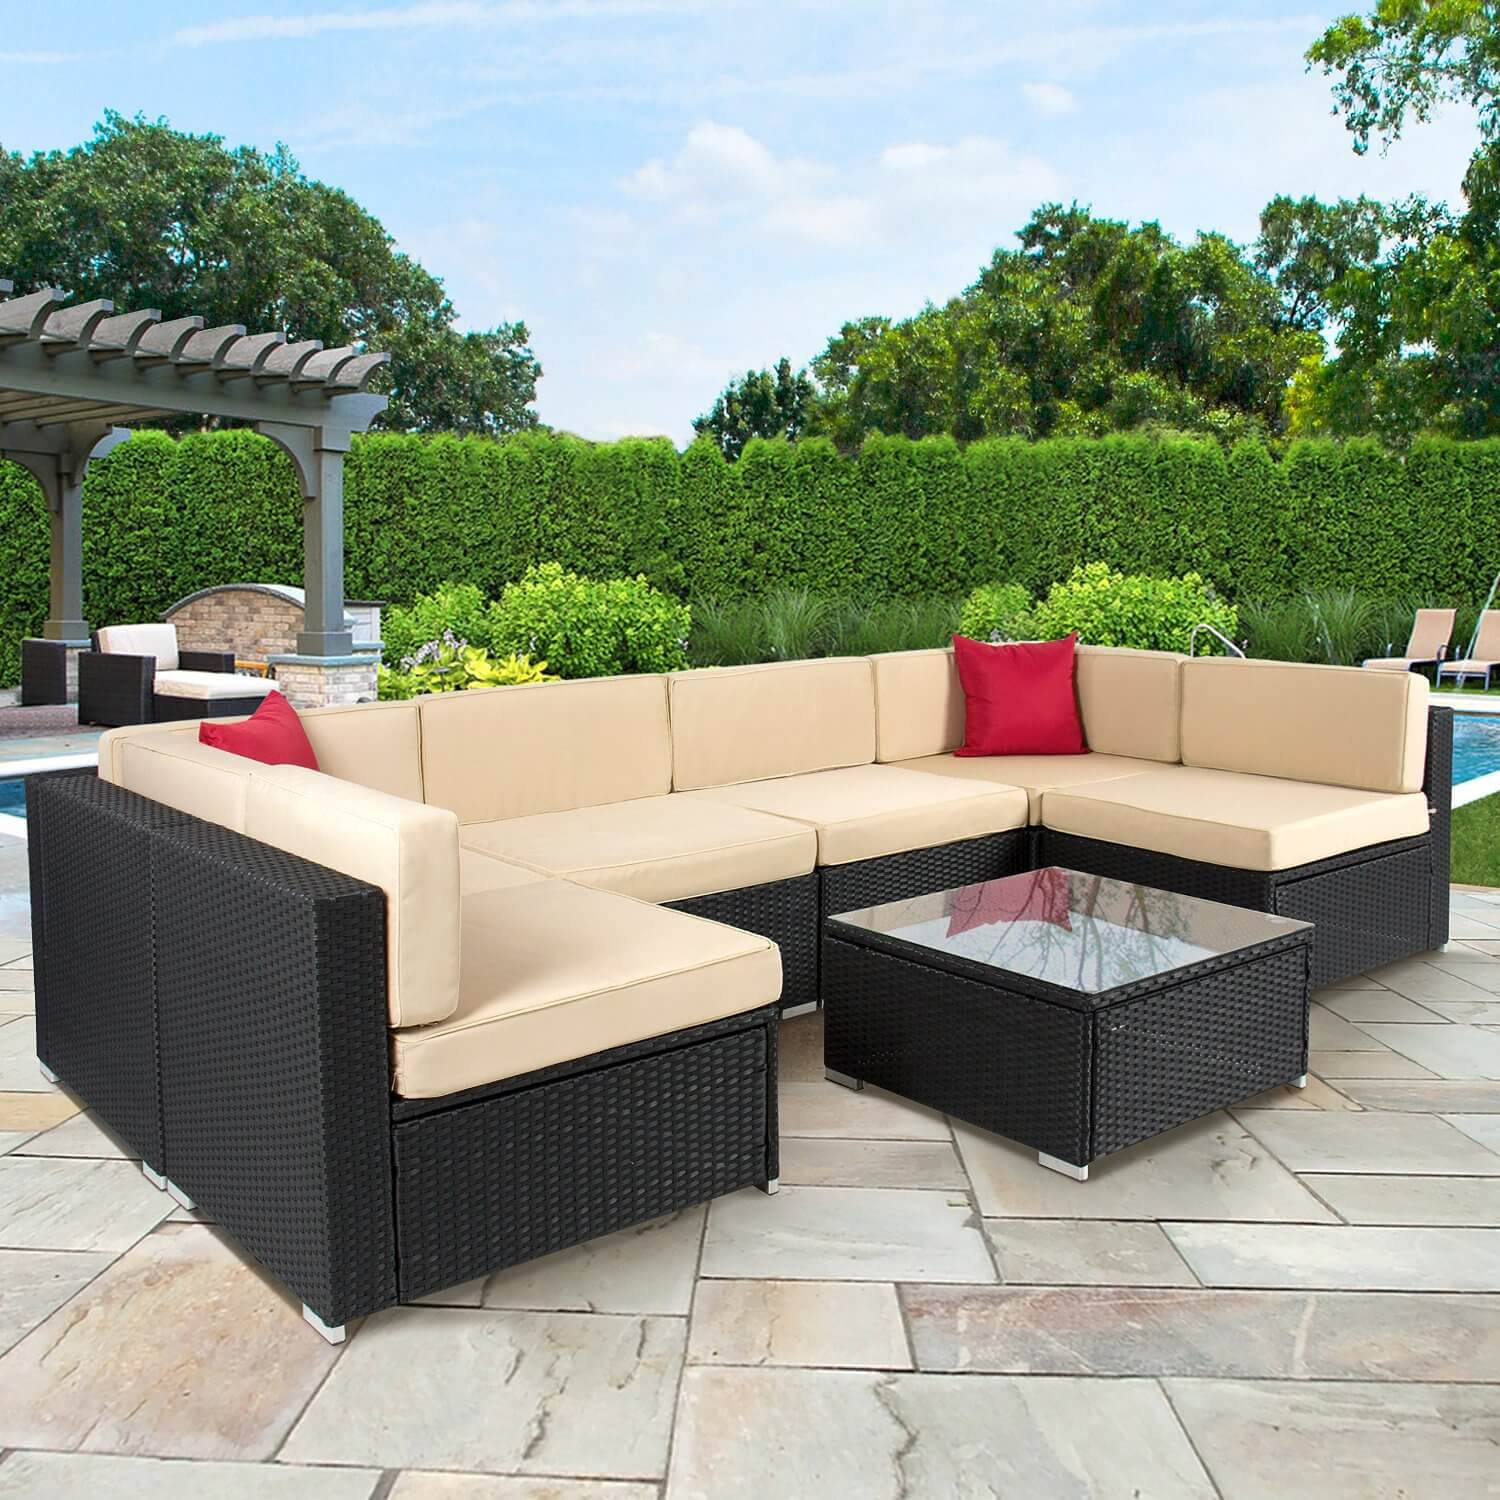 Deck Furniture Ideas 72 Comfy Backyard Furniture Ideas